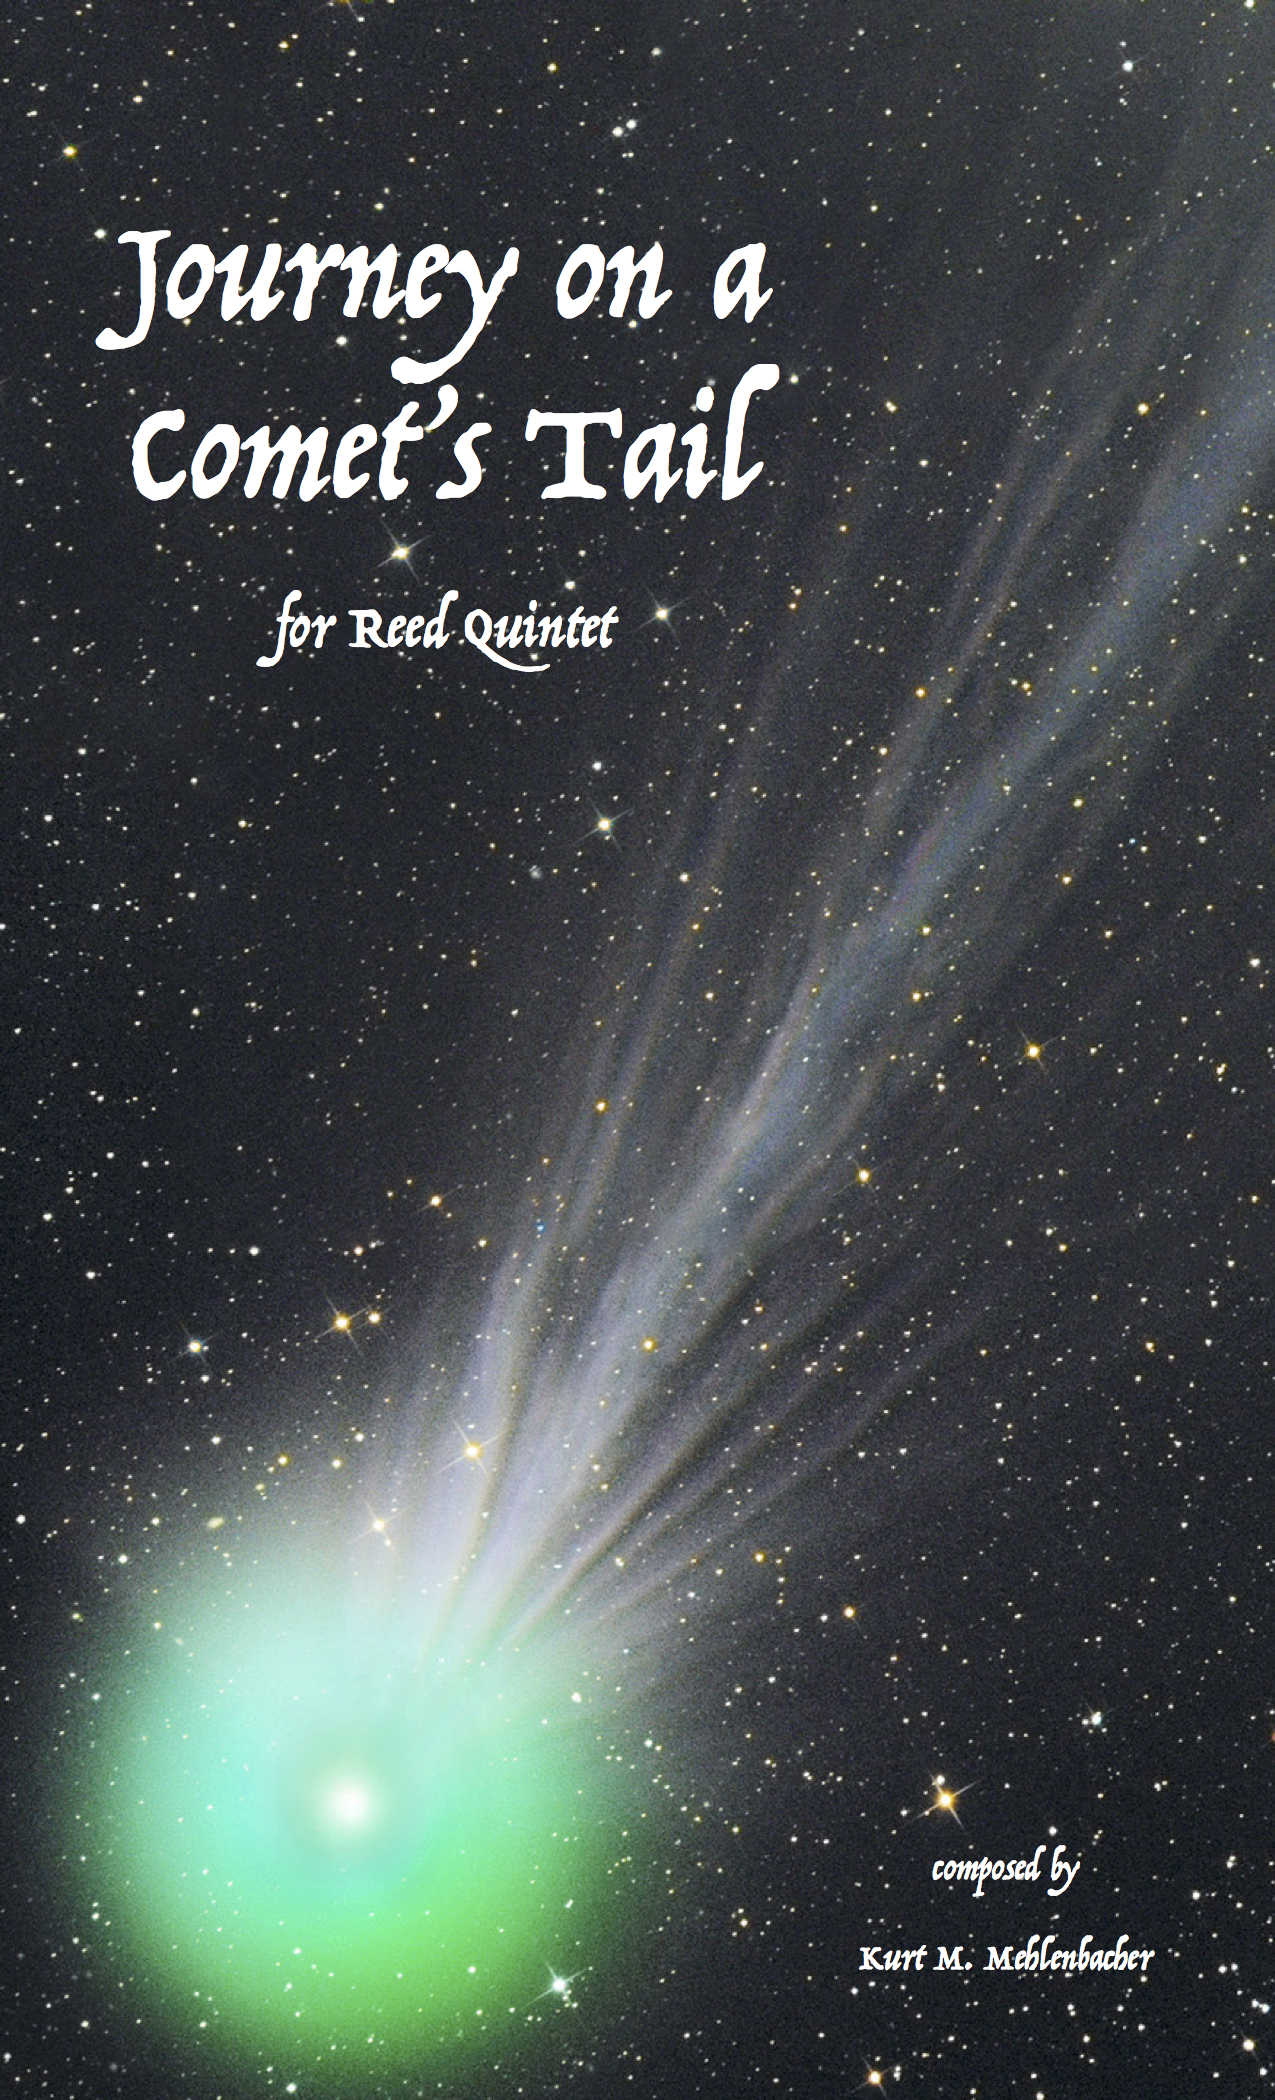 Journey on a Comet's Tail    for reed quintet (oboe, soprano / alto saxophone, Bb clarinet, bass clarinet, and bassoon)